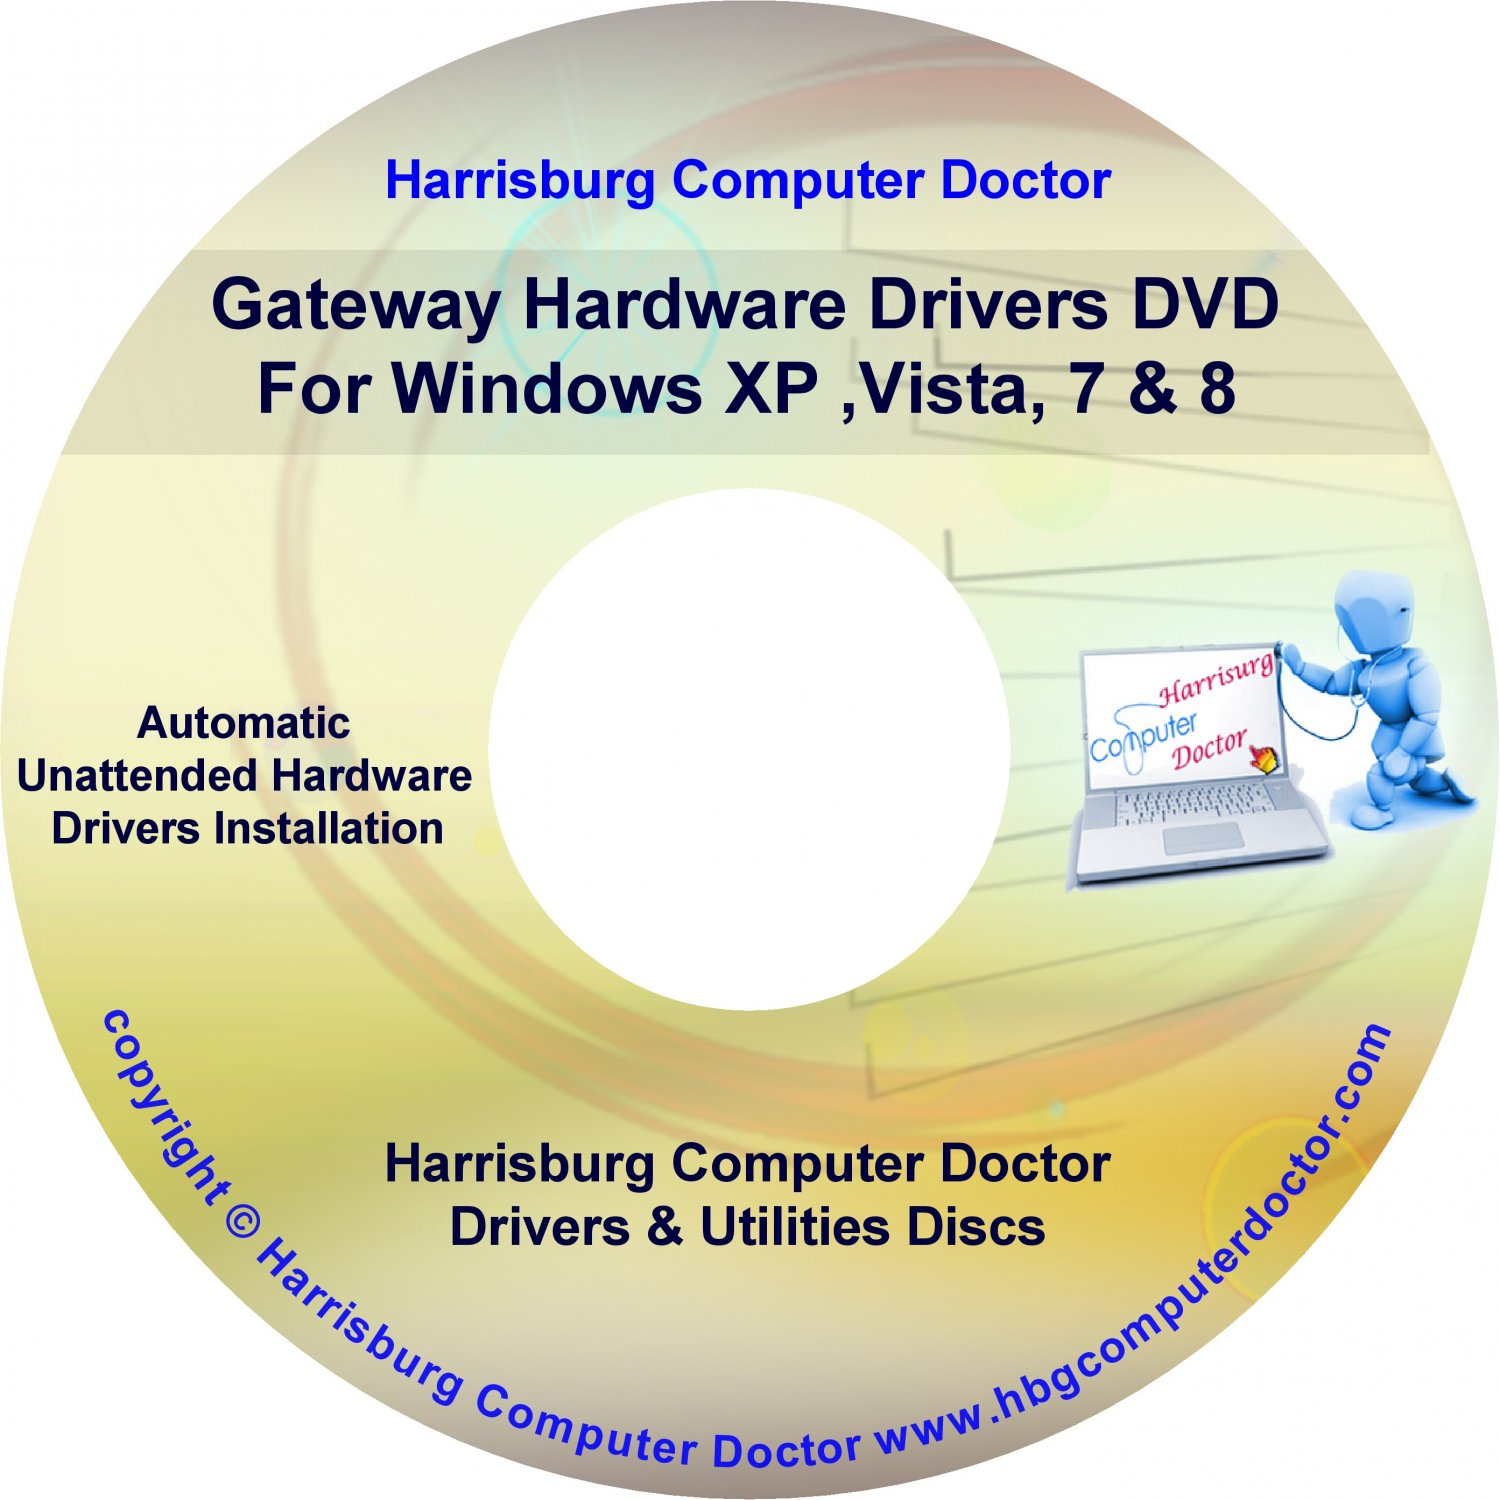 Gateway GT5456h Drivers DVD For Windows, XP, Vista, 7 & 8